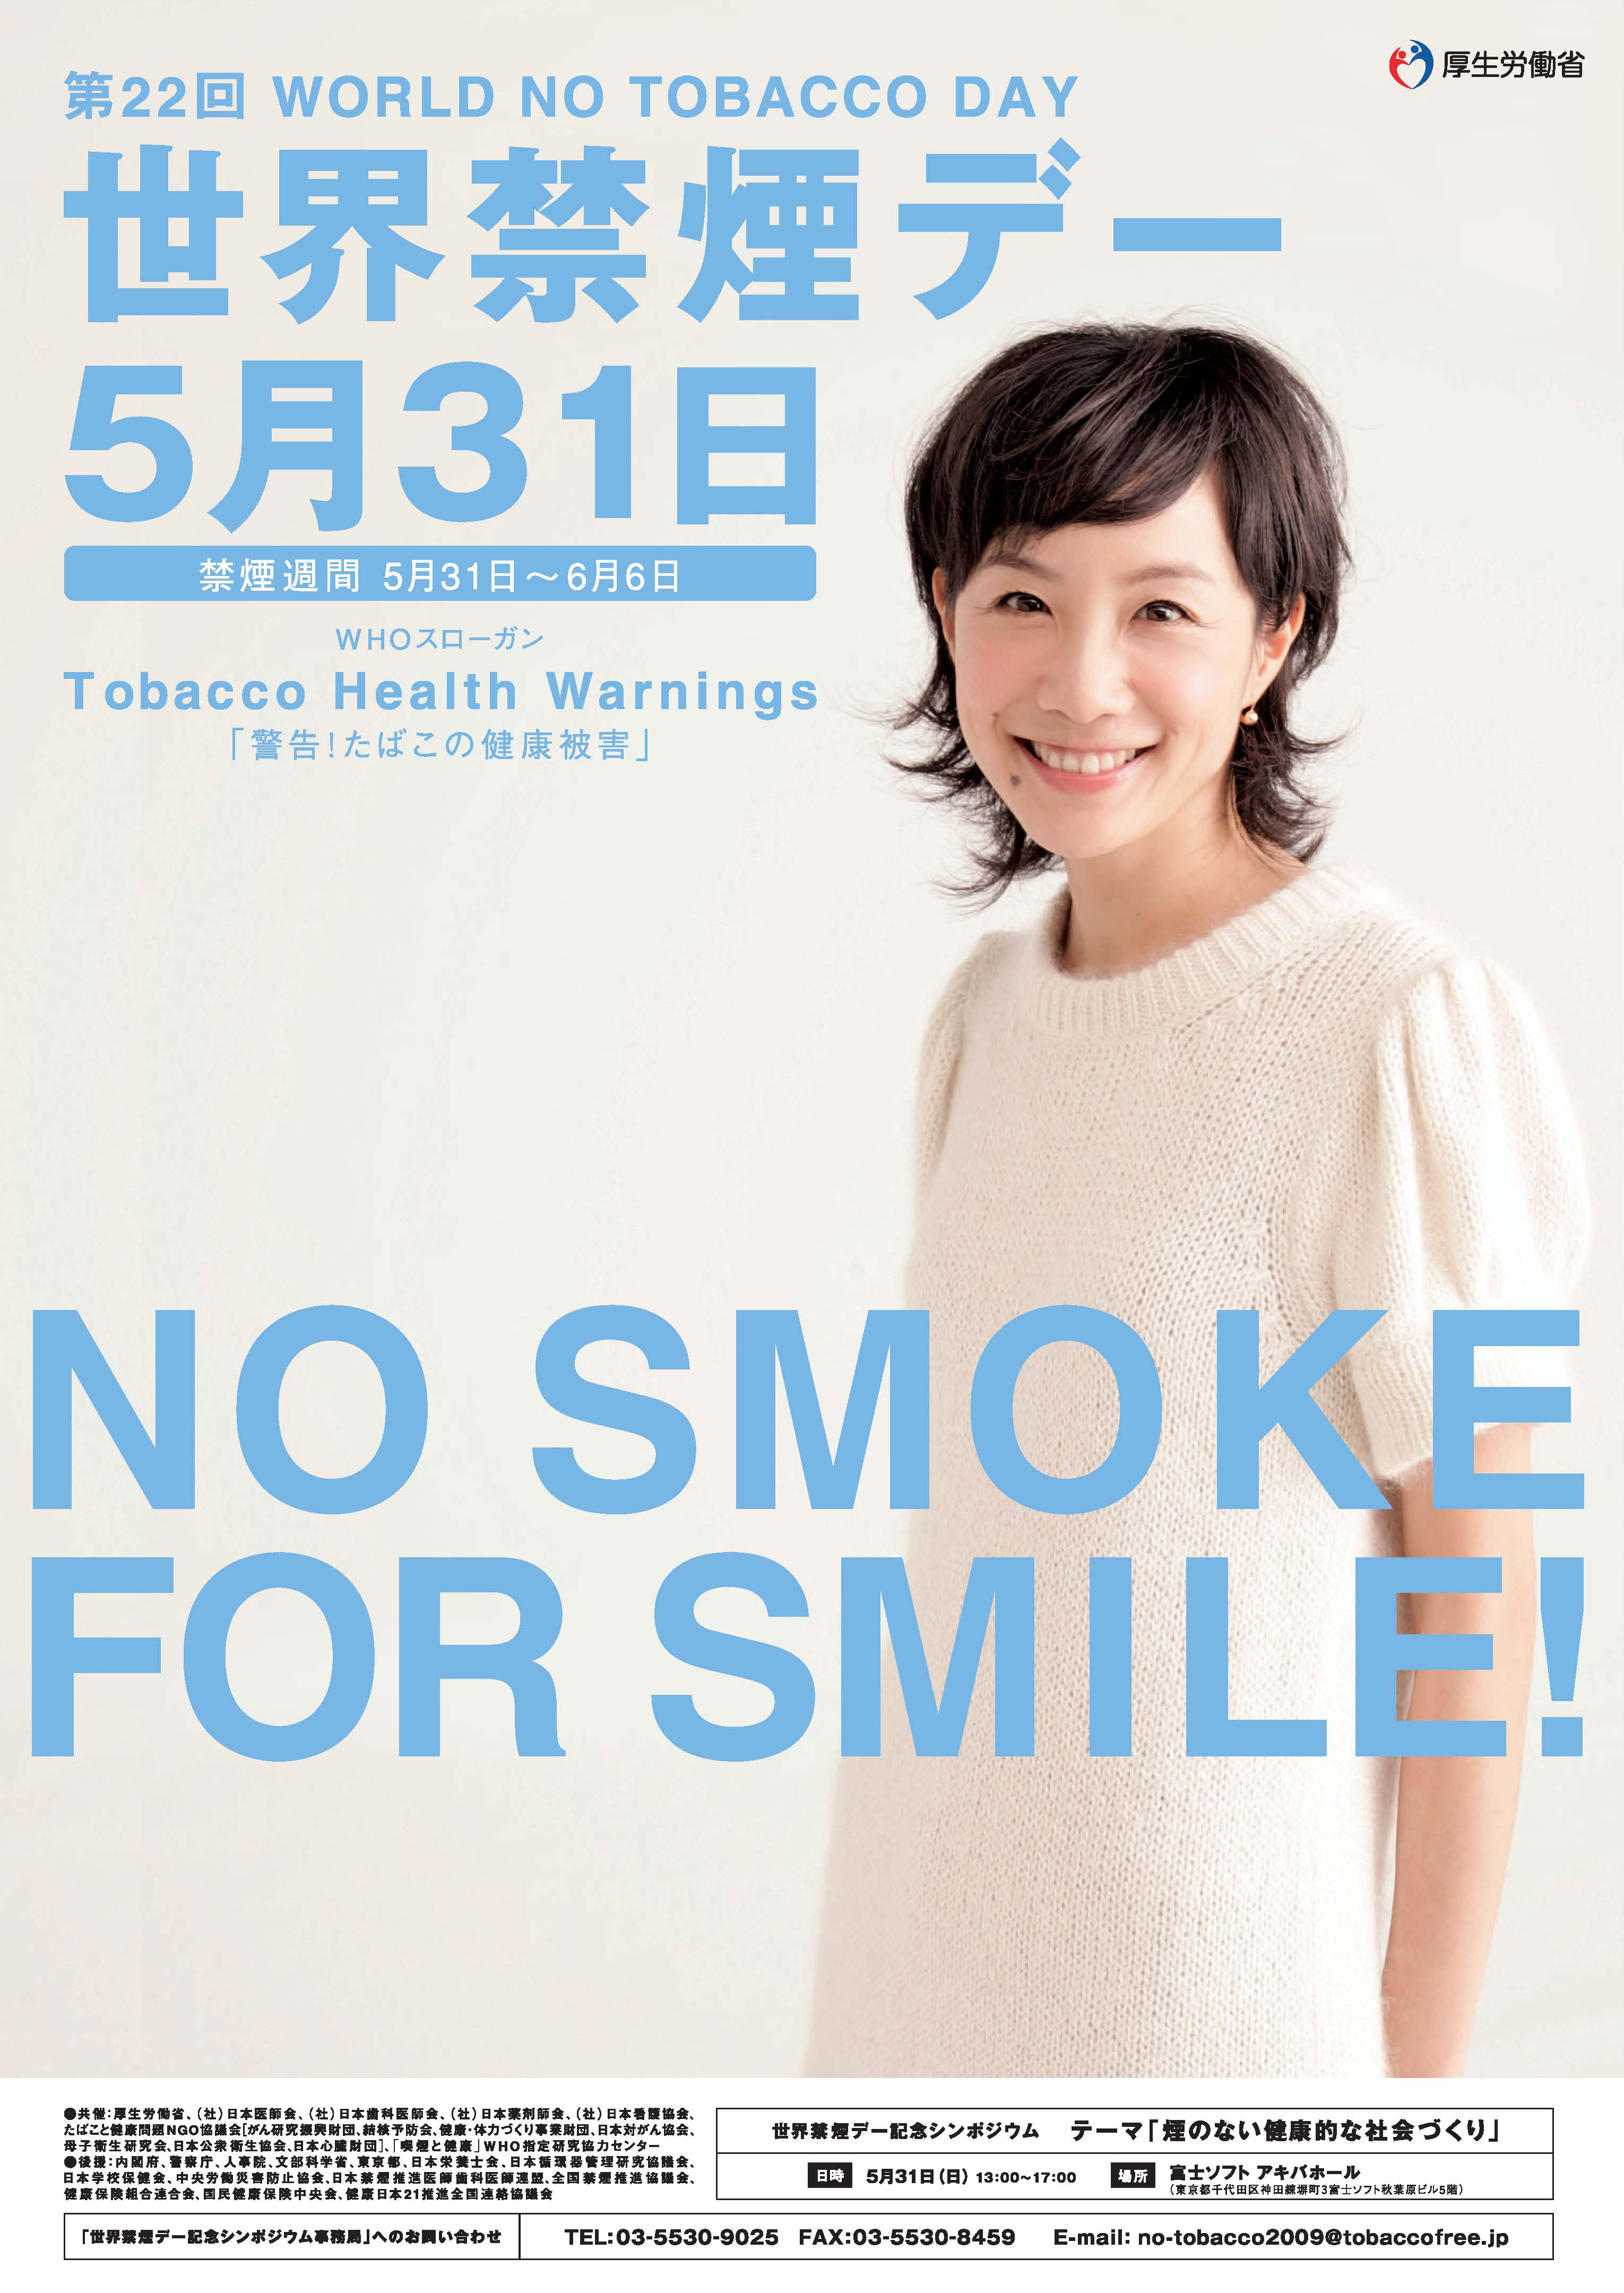 http://www.jatahq.org/tobacco_ngo/poster/2009mhlwposter.jpg